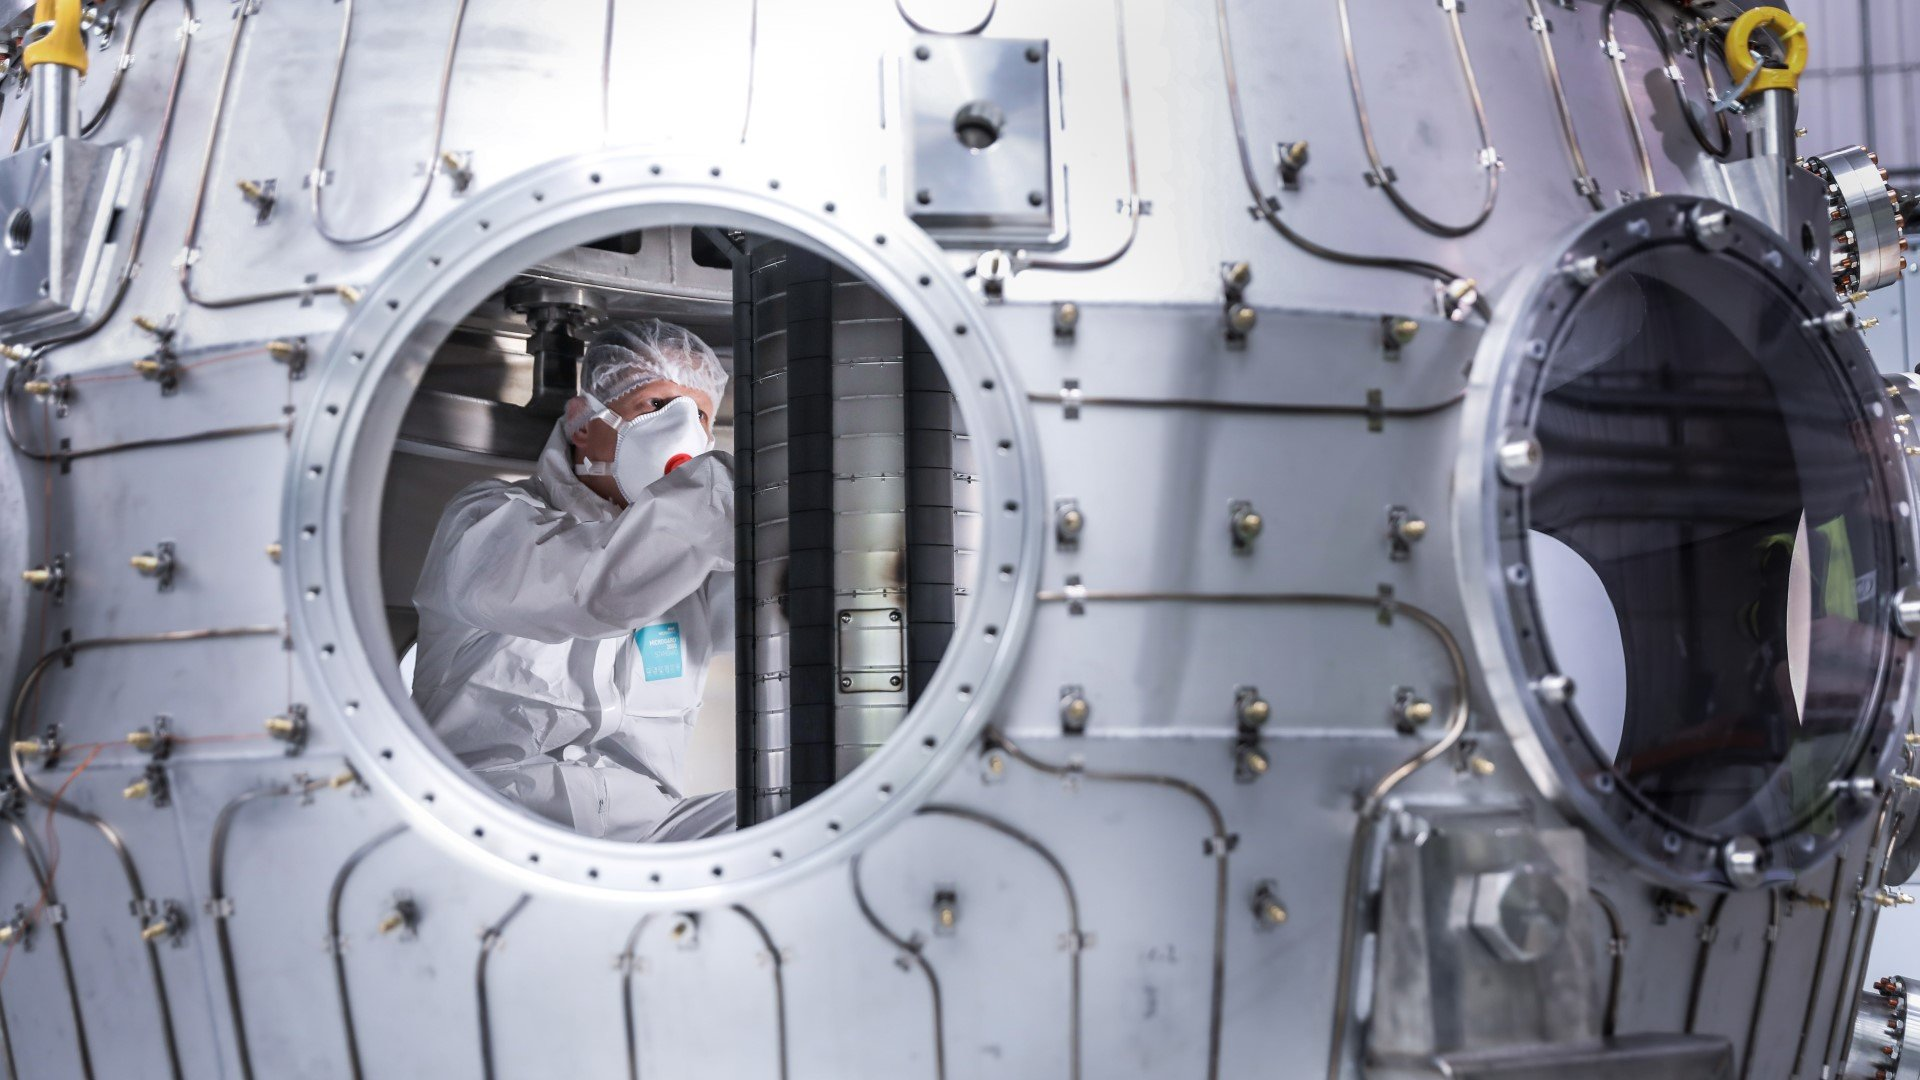 Tokamak Energy signals major expansion with over 160 new jobs